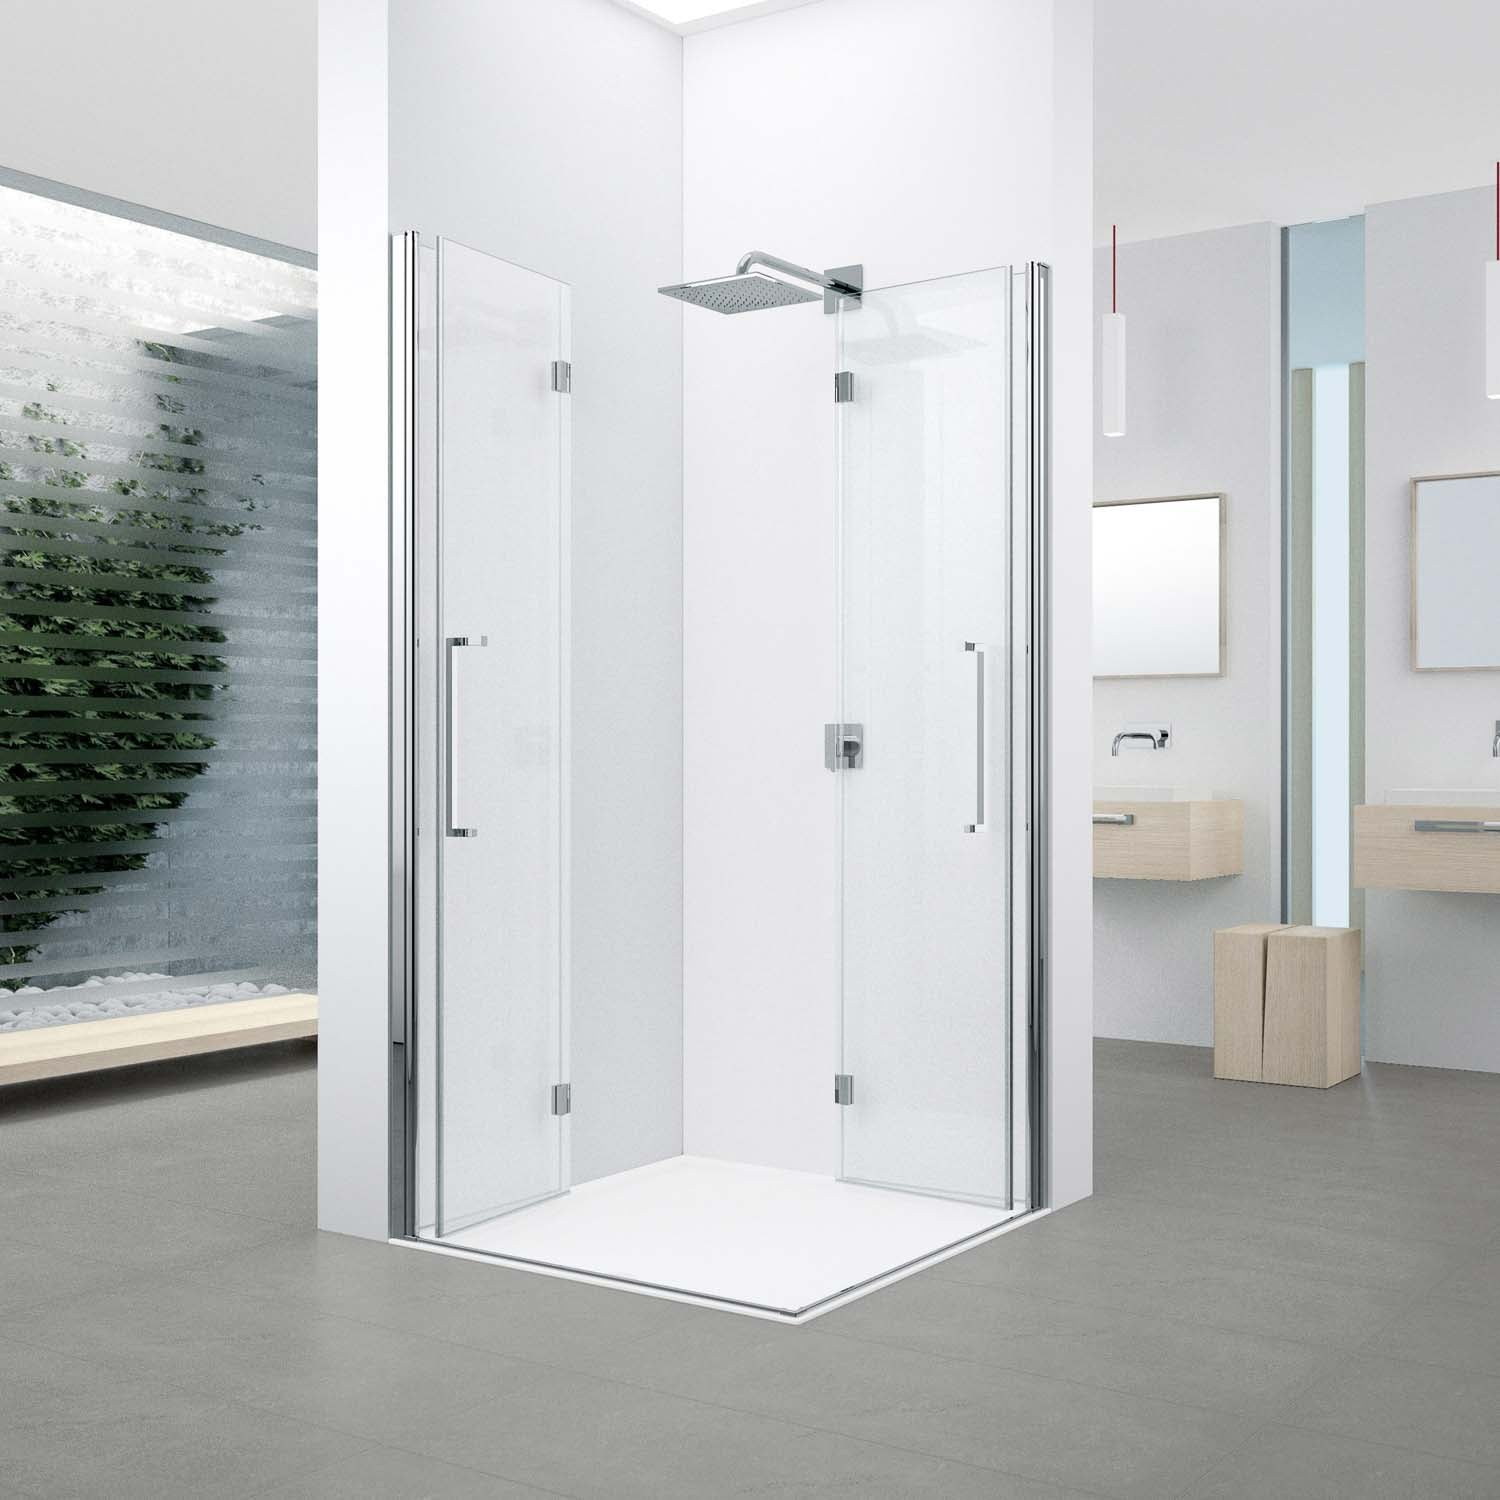 890-910mm Bliss Bi-folding Screen Frosted Glass with a chrome finish lifestyle image